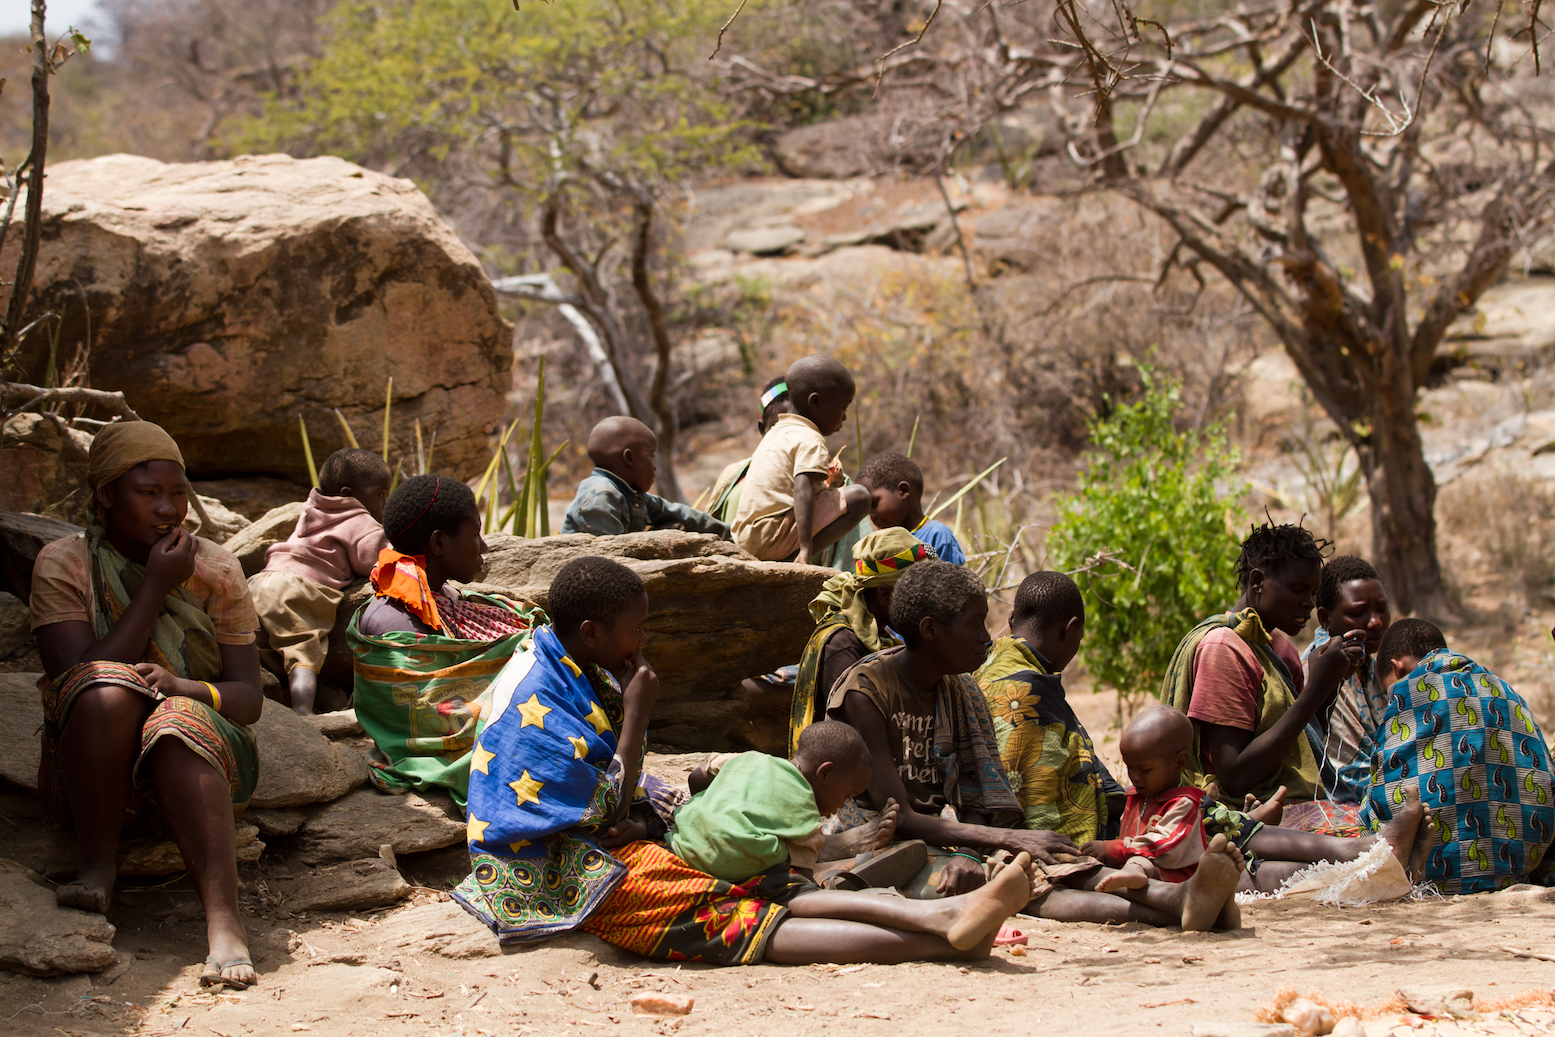 A recent study of modern hunter-gatherers in Tanzania may shed some light on the sleep problems humans often experience as we get older.